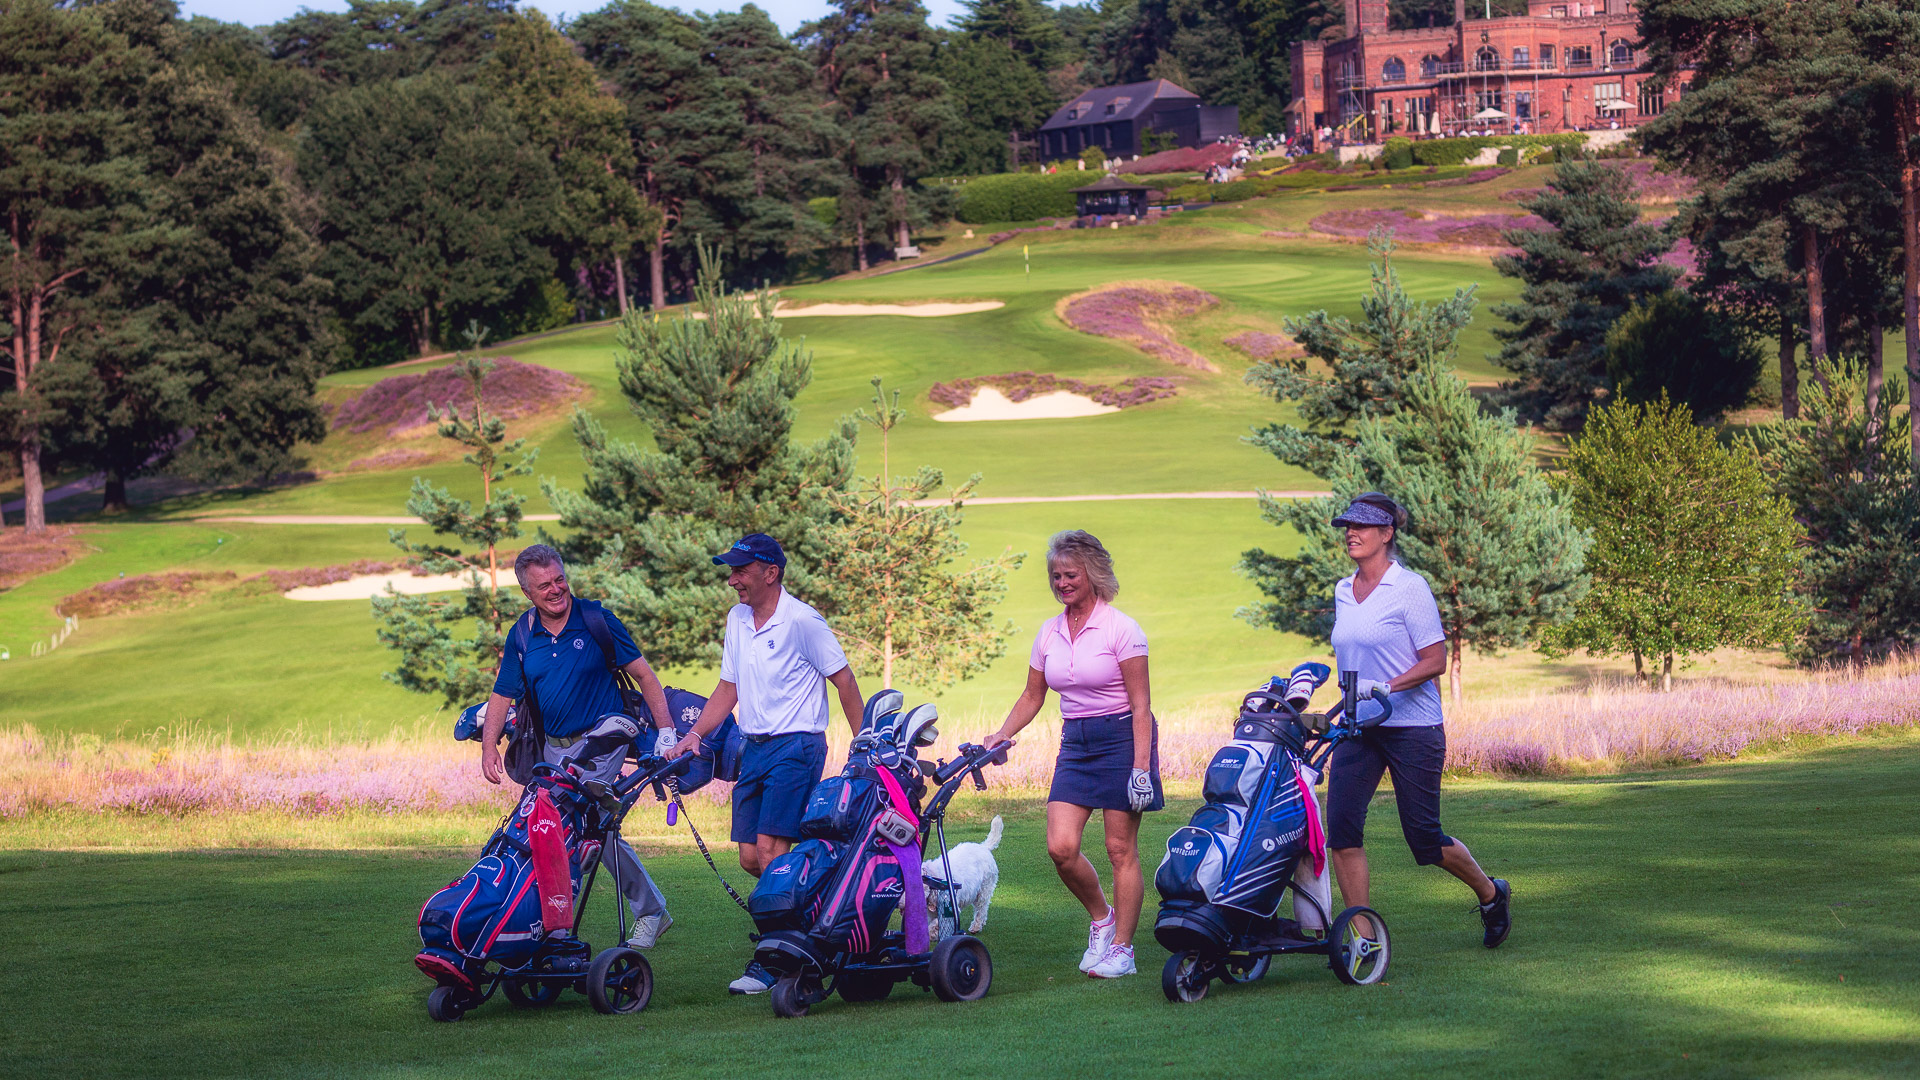 Green-Players-St-Georges-Hill-Golf-Club-1068